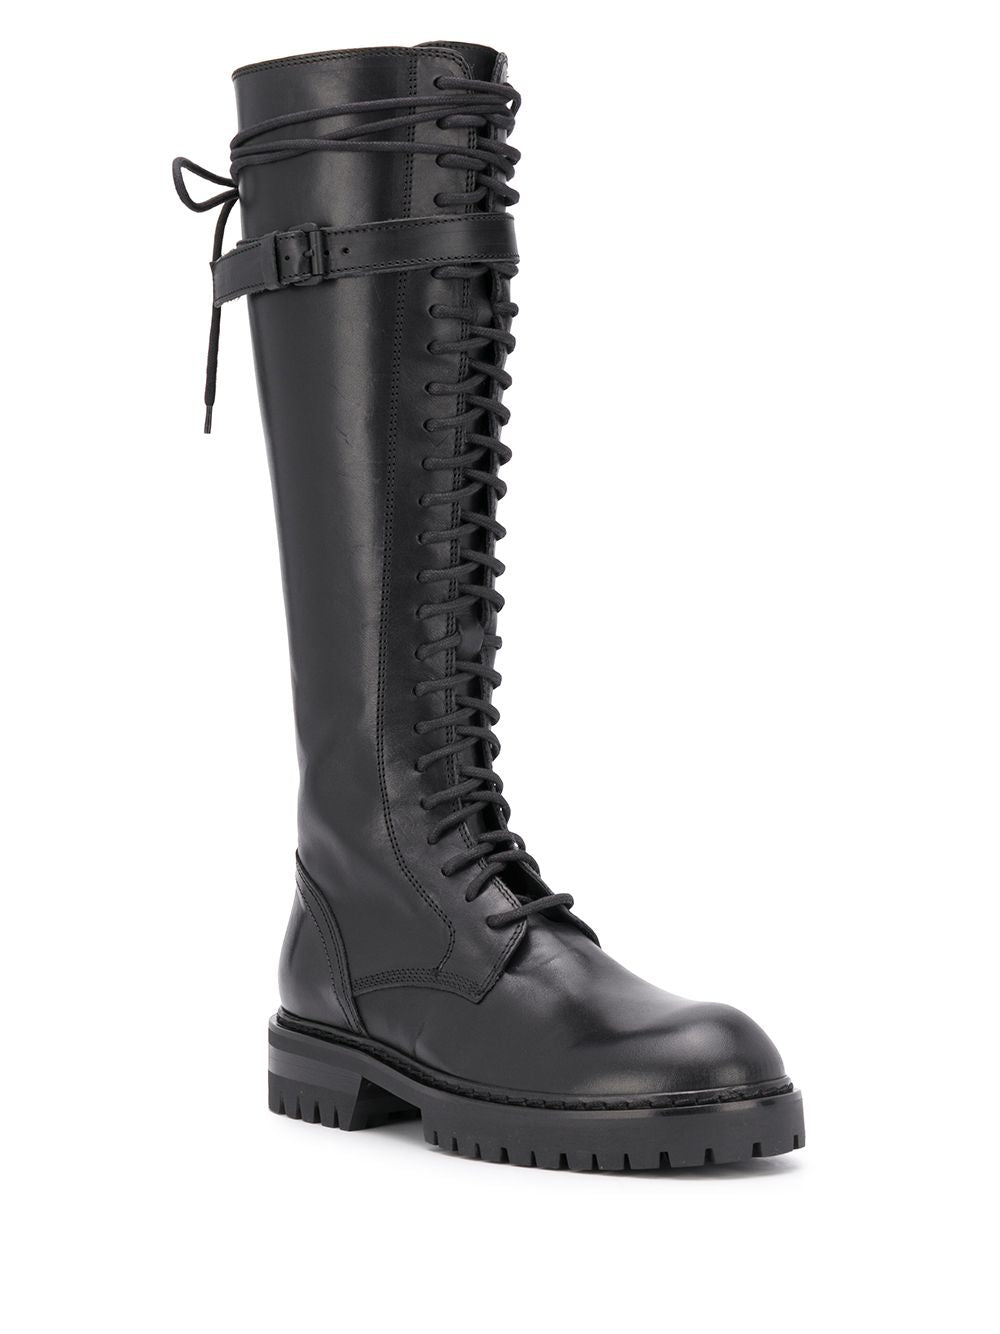 ANN DEMEULMEESTER WOMEN 24 HOLES COMBAT BOOTS WITH LEATHER STRAP